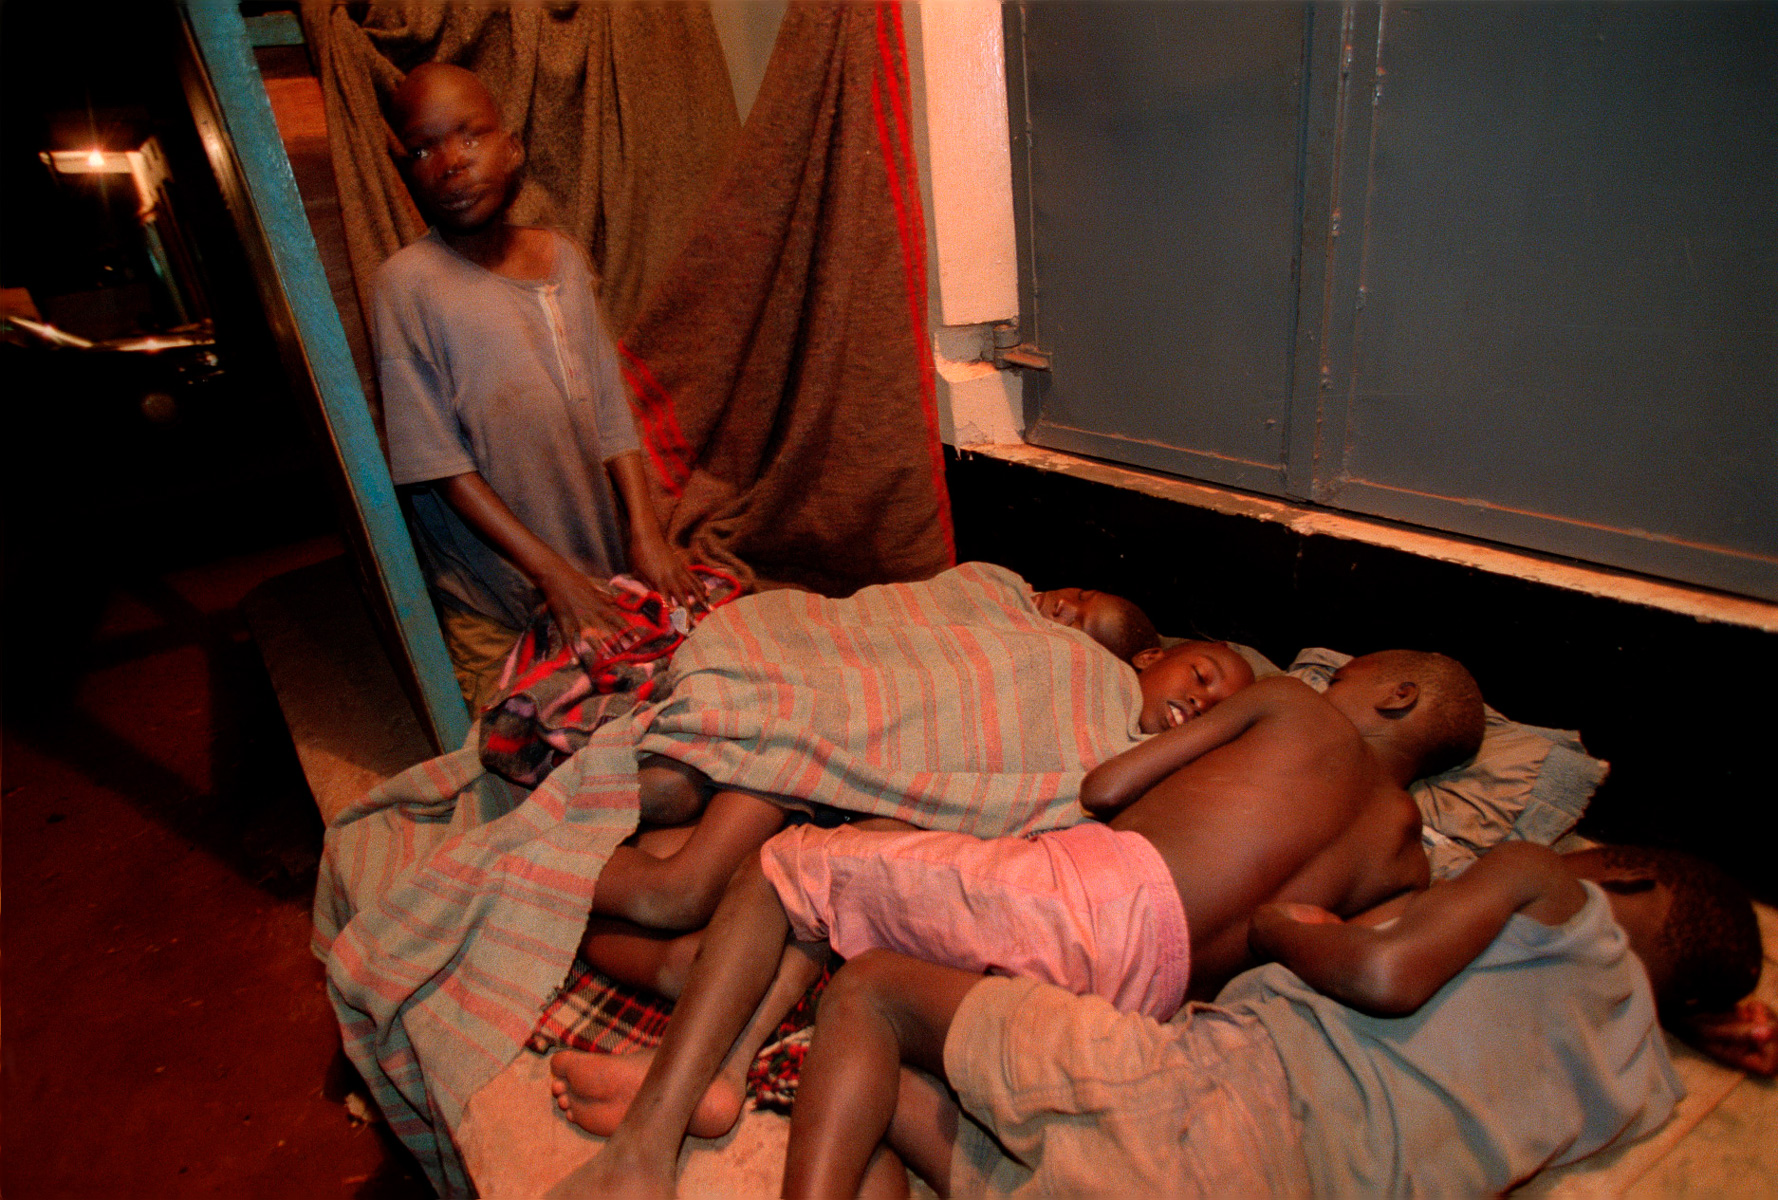 Children sleep at the bus park in Gulu. It is estimated that 40,000 children leave their villages every night to sleep at hospitals, churches, towns or wherever they feel more safe from abduction by the Lord's Resistance Army. They are called night commuters. Uganda.